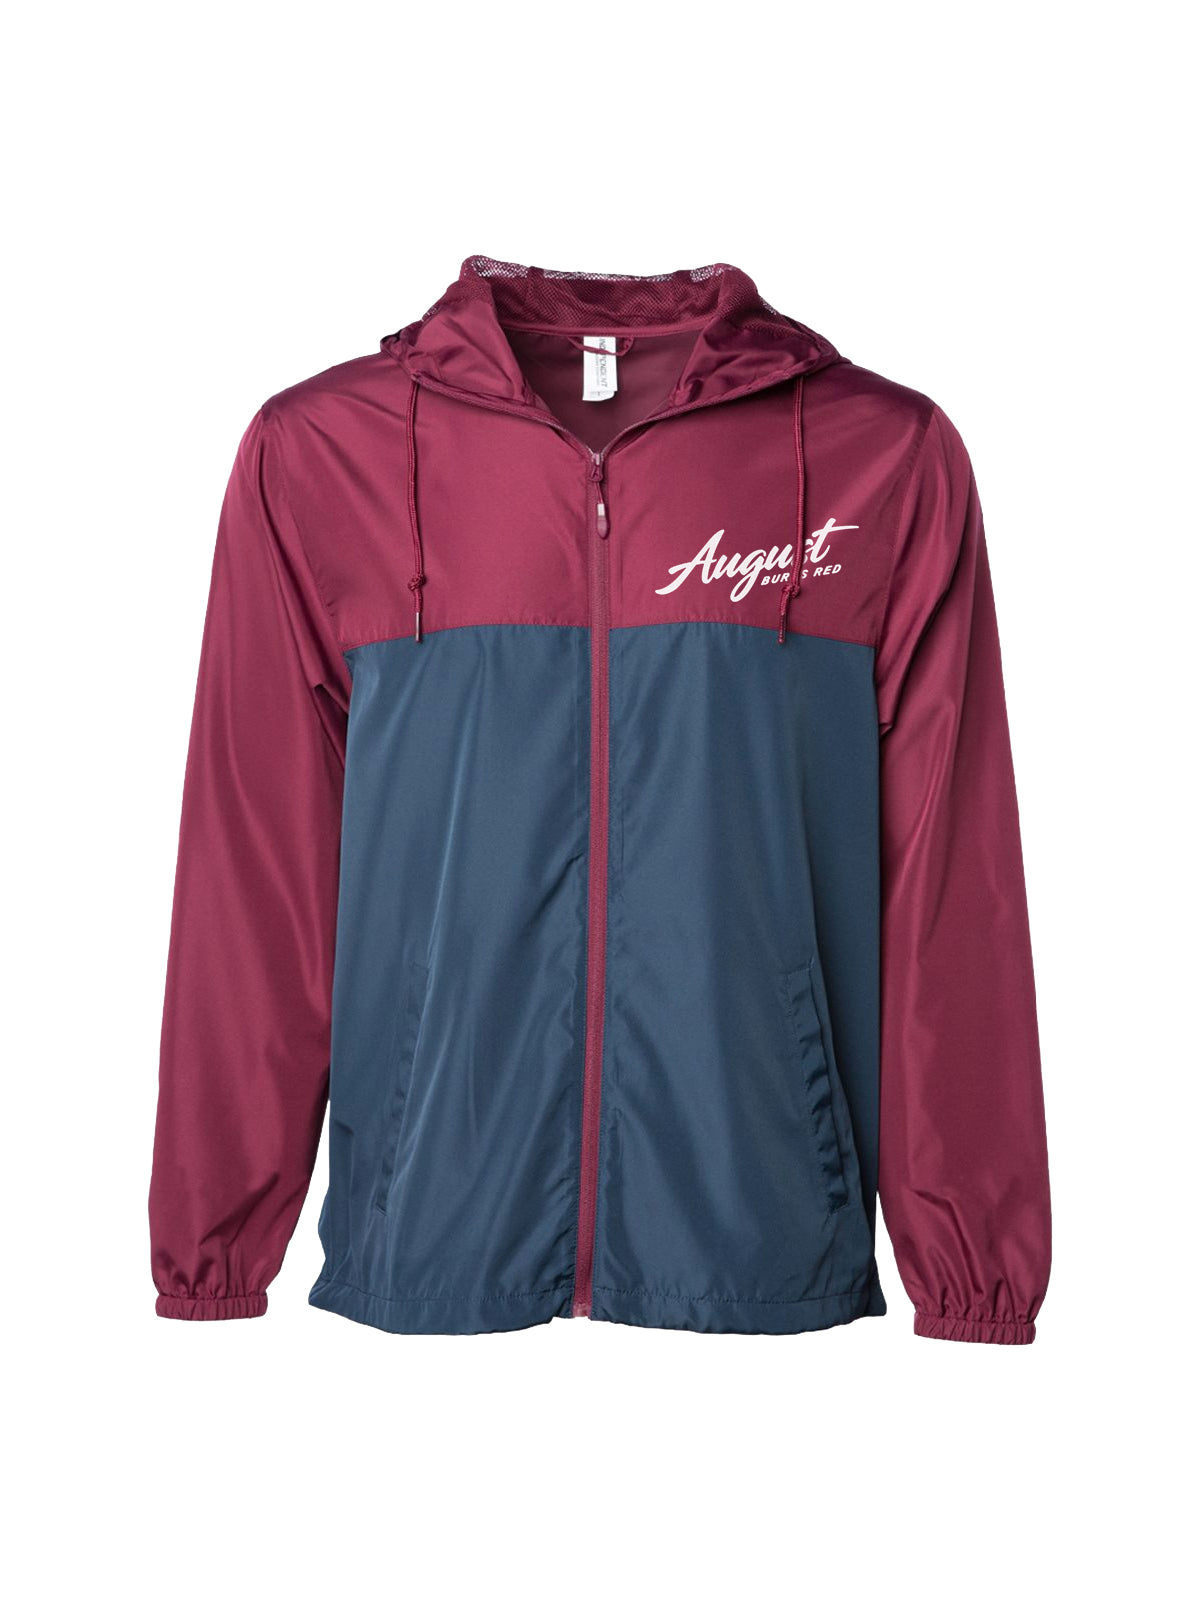 August Burns Red - Script Windbreaker - Merch Limited